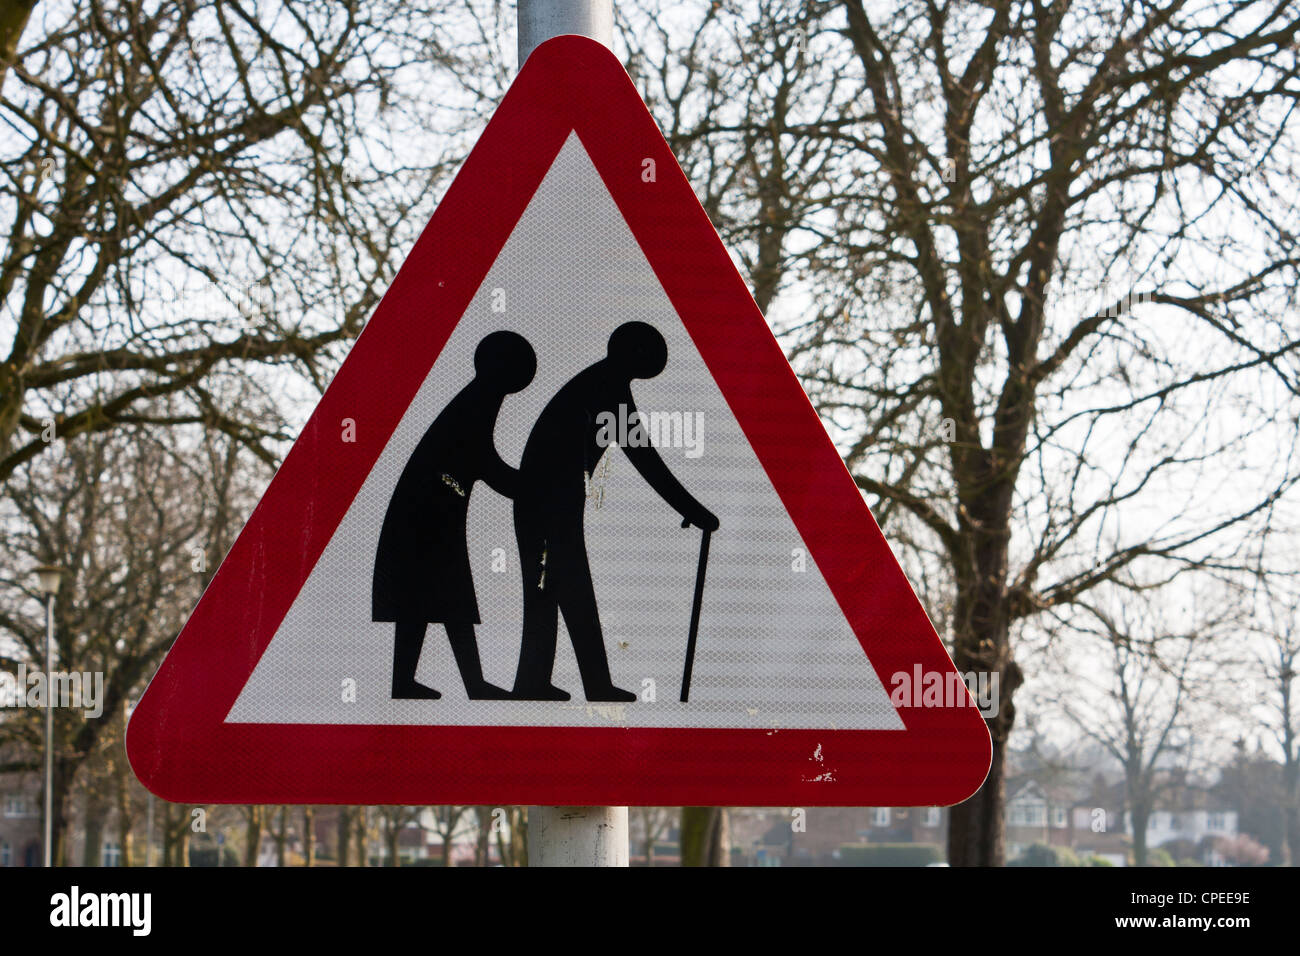 A red triangular road sign warning of frail pedestrians likely to cross road ahead. - Stock Image